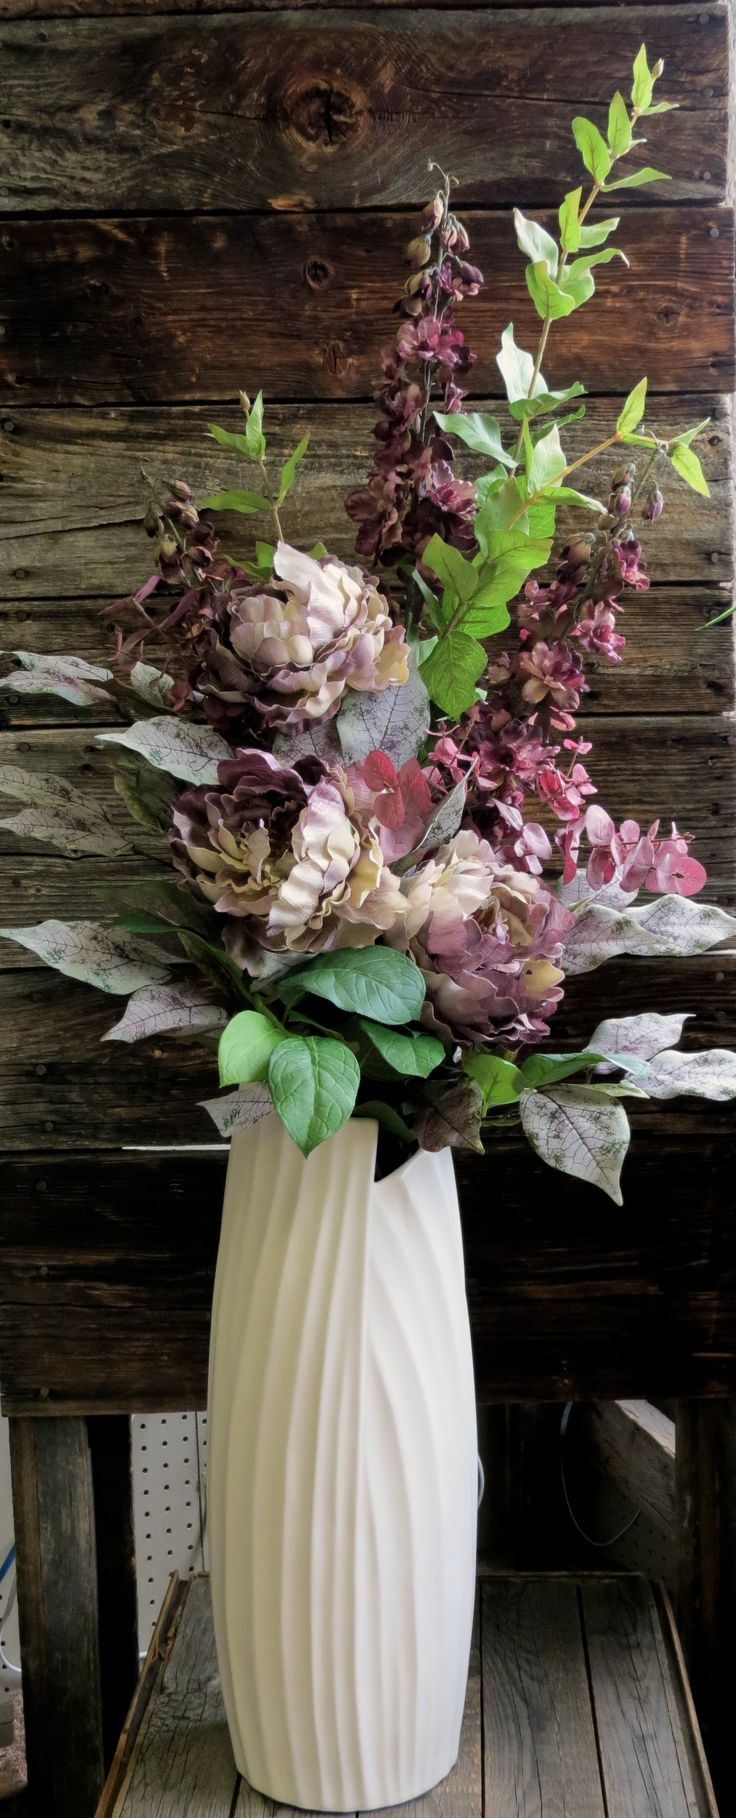 Tall Floor Vase with Romantic Mauve & Purple Silk Flowers - the flower arrangement is removable to accommodate easy change over for other seasonal arrangements